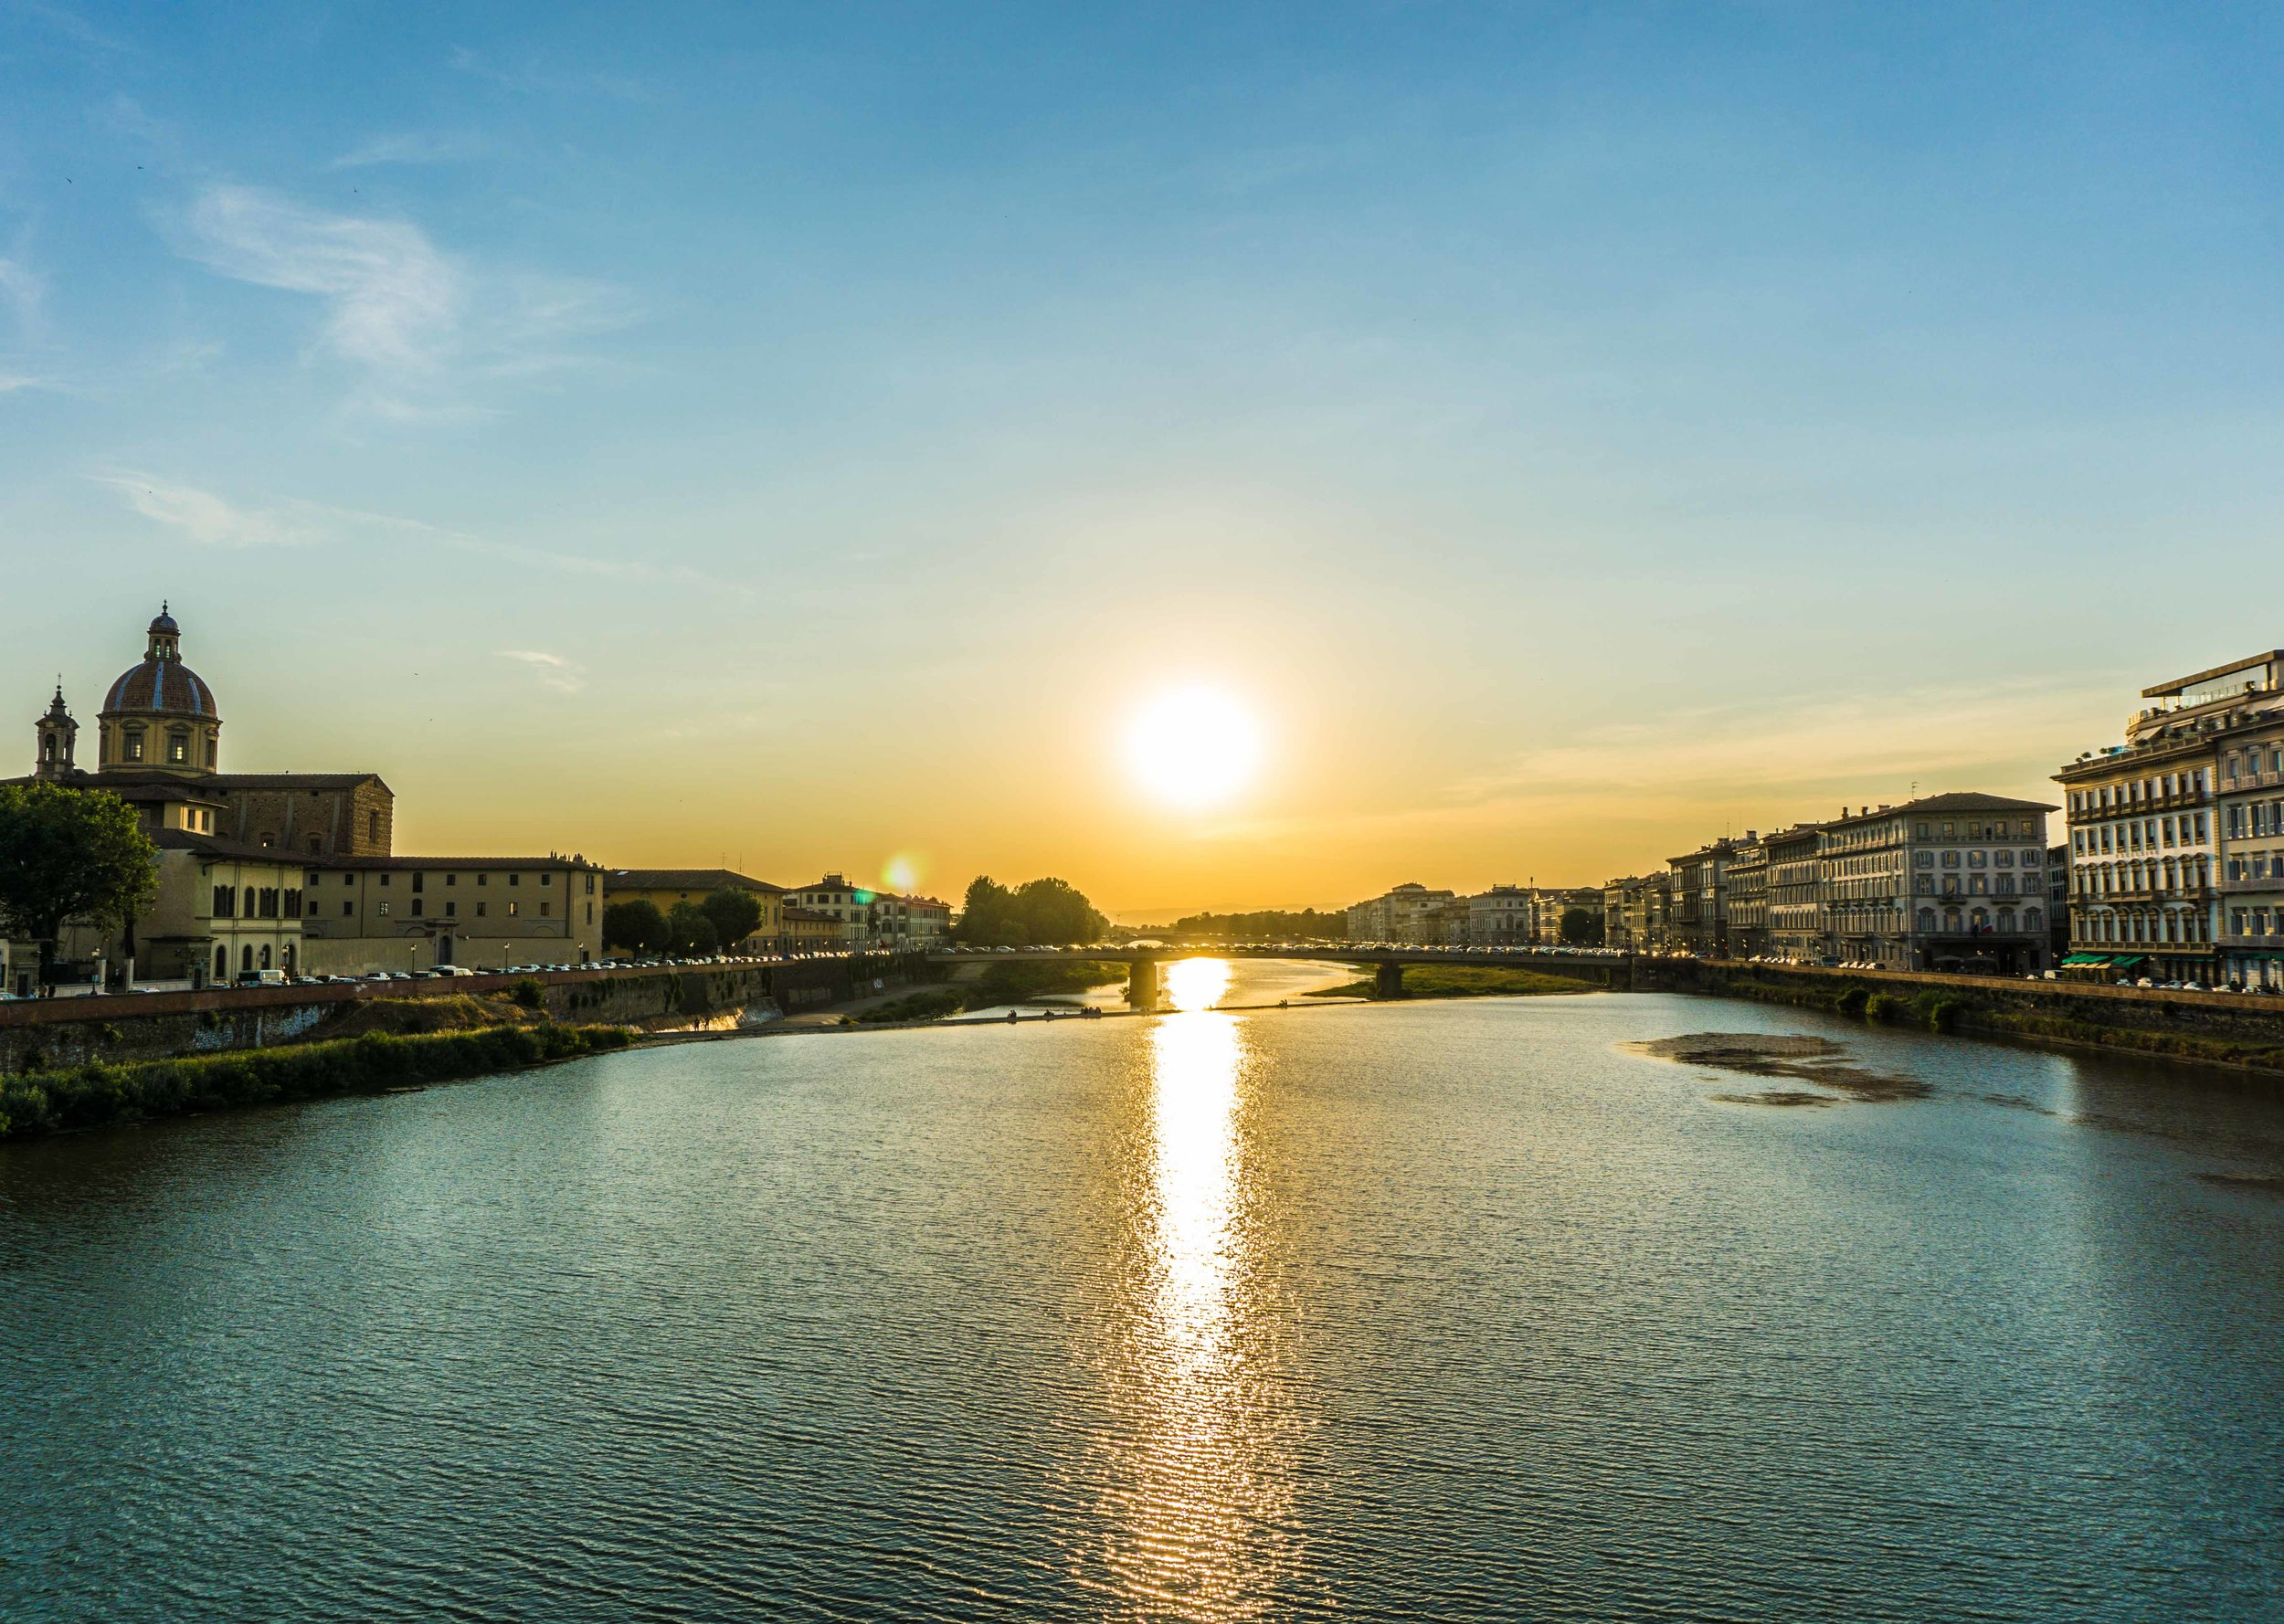 Firenze sunsets fire up the Arno